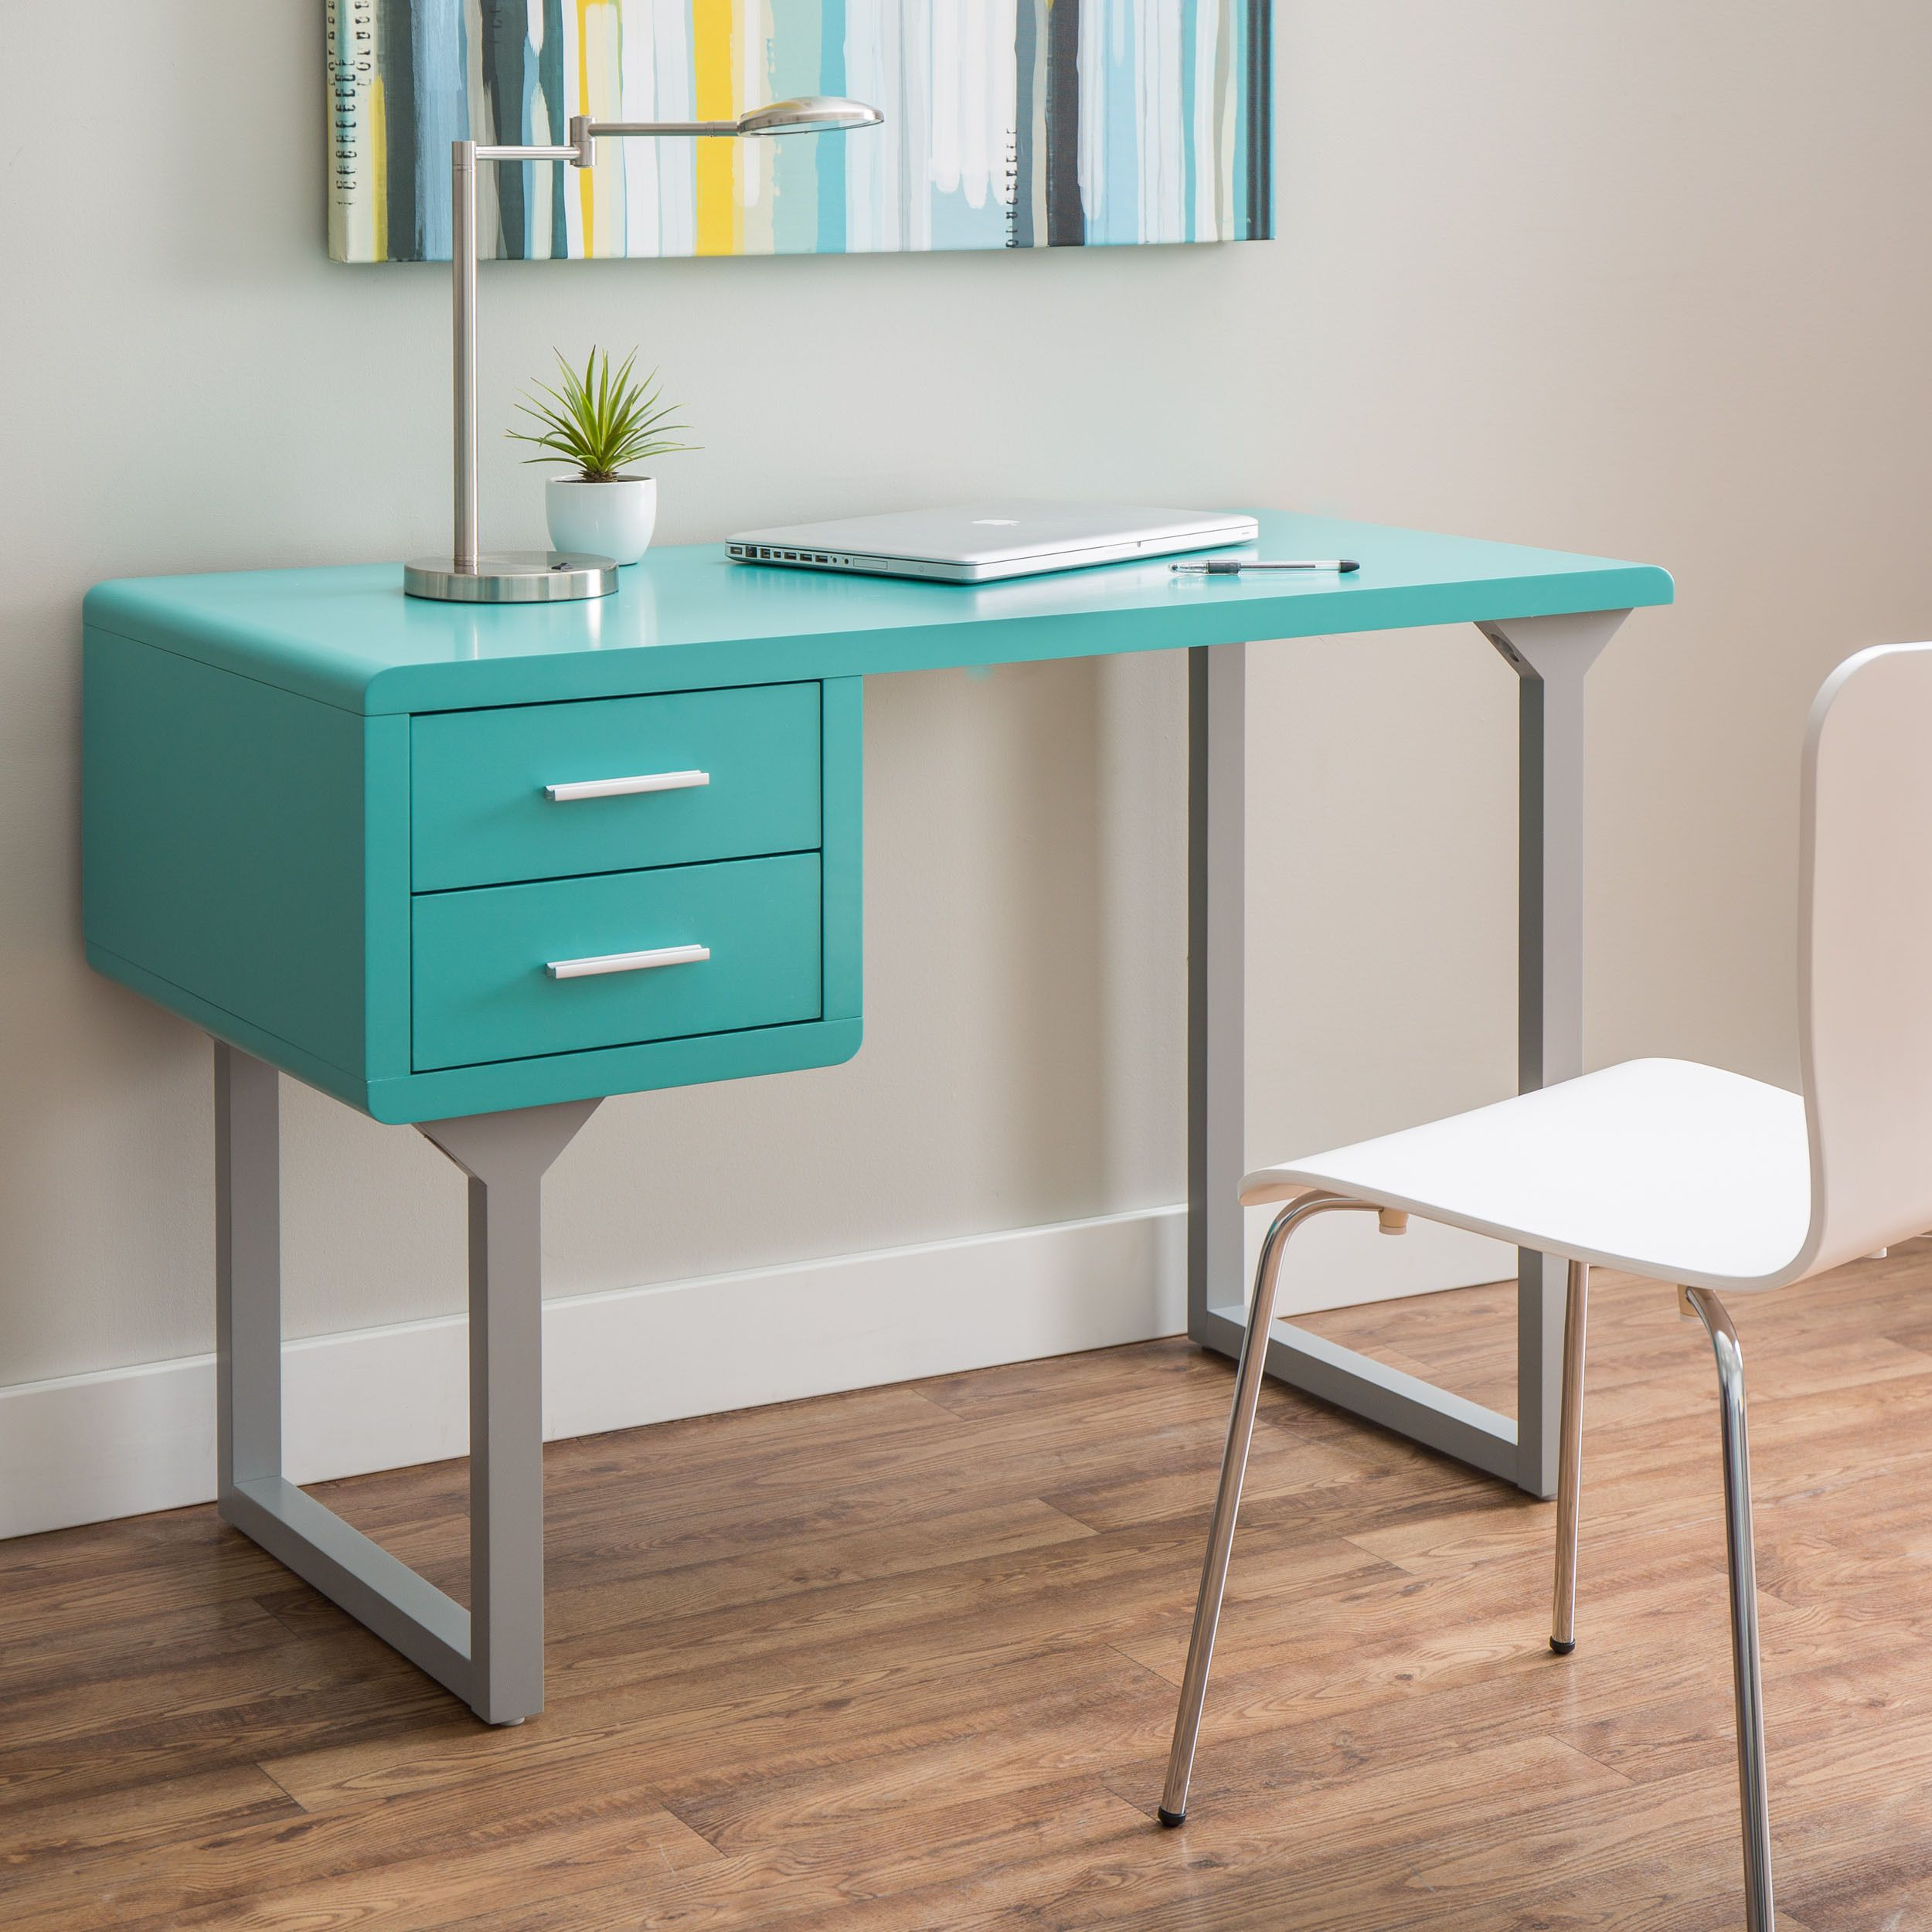 Home Office Design Stores Kids Buy Study Table Furniture F: Retro Turquoise And Grey Writing Desk By I Love Living